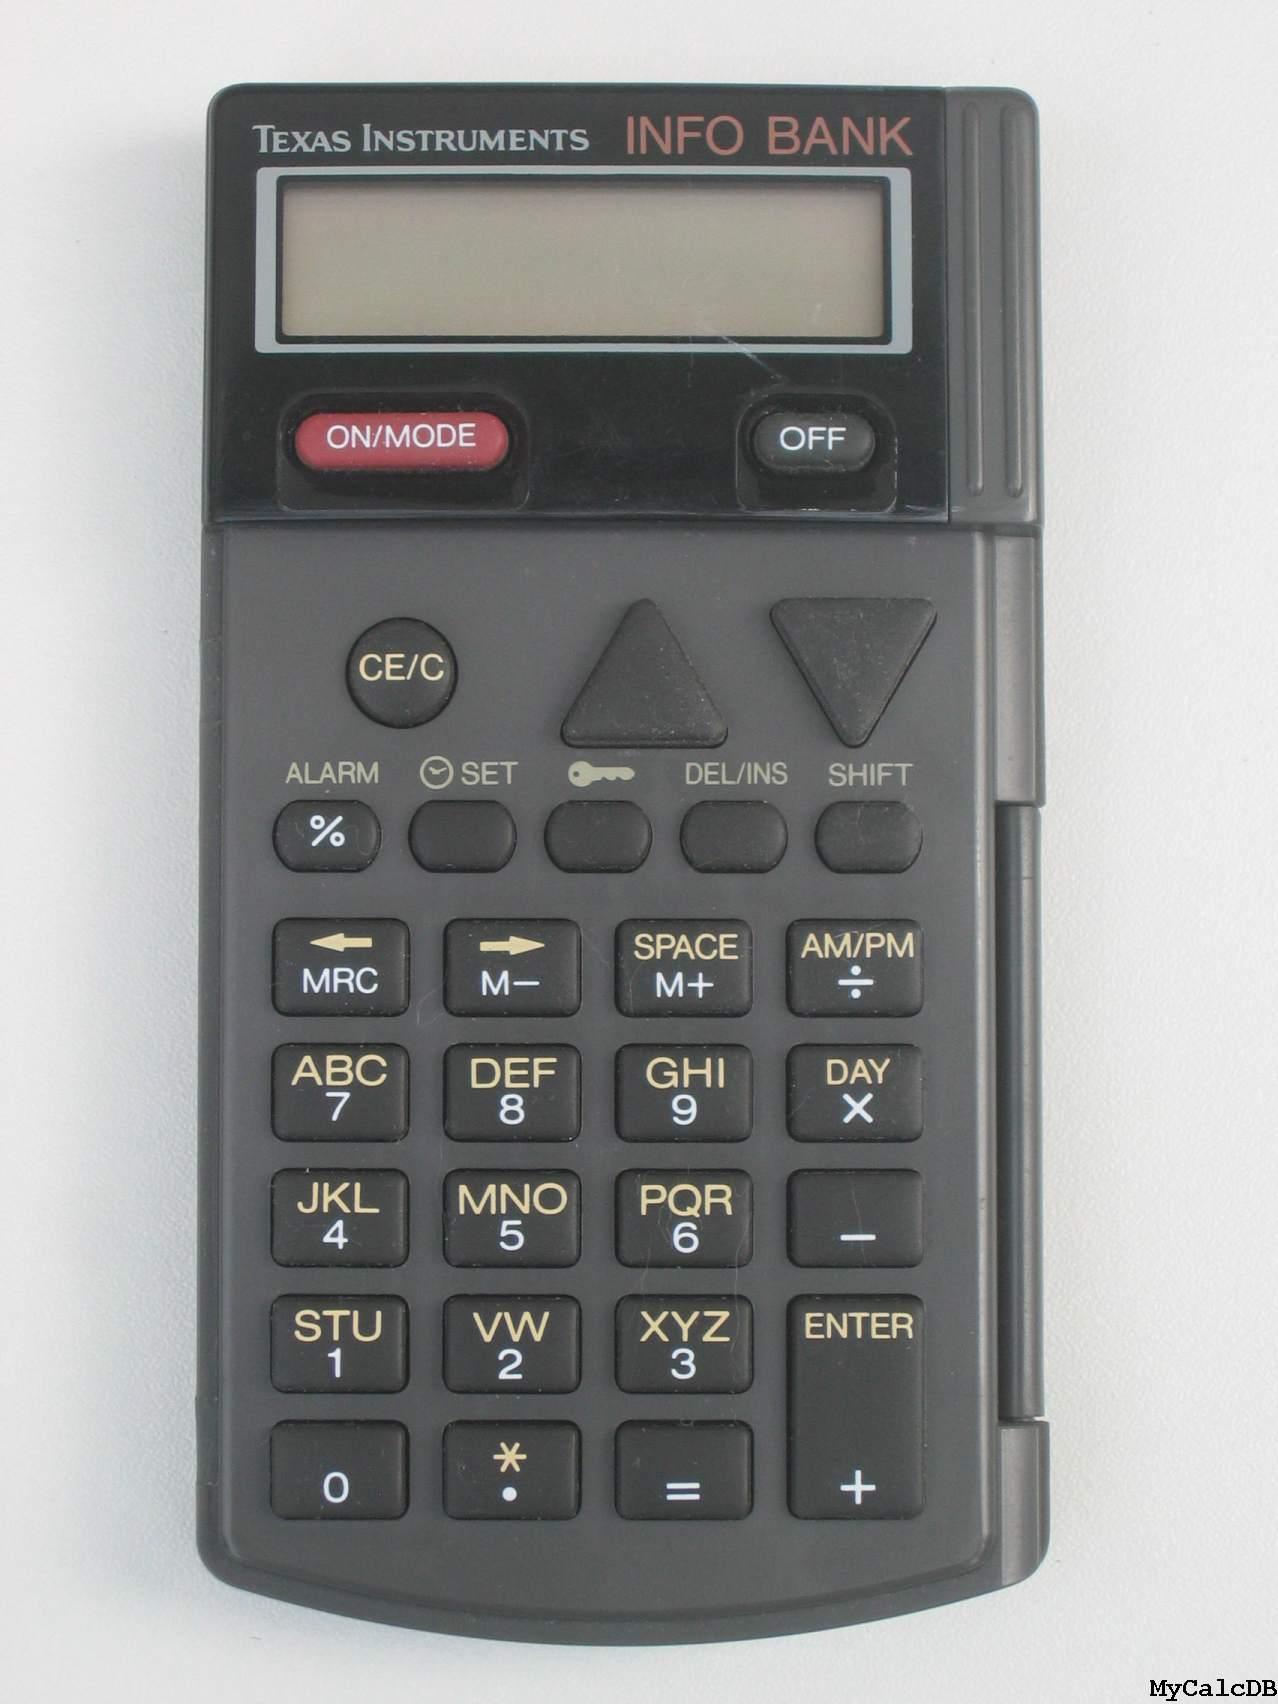 Texas Instruments INFO BANK